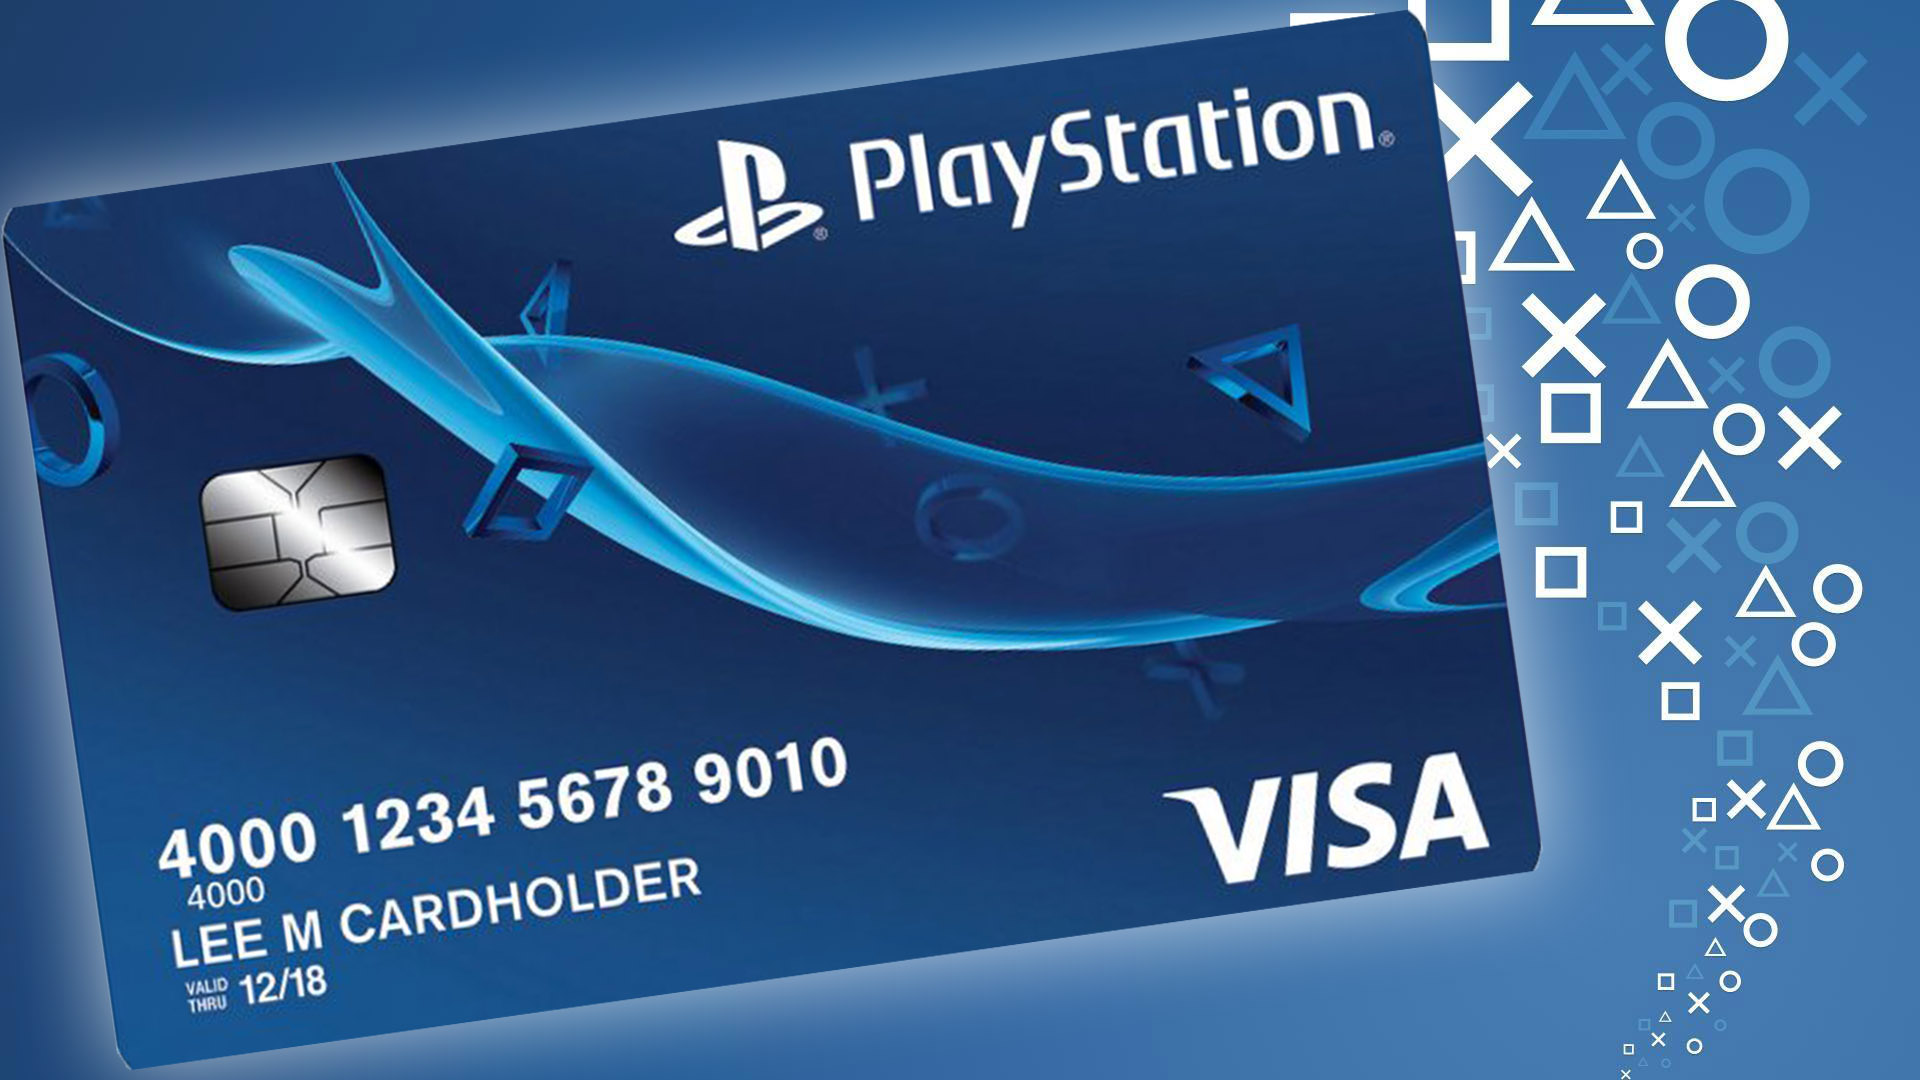 A Playstation Credit Card Exists and Here's What It Is